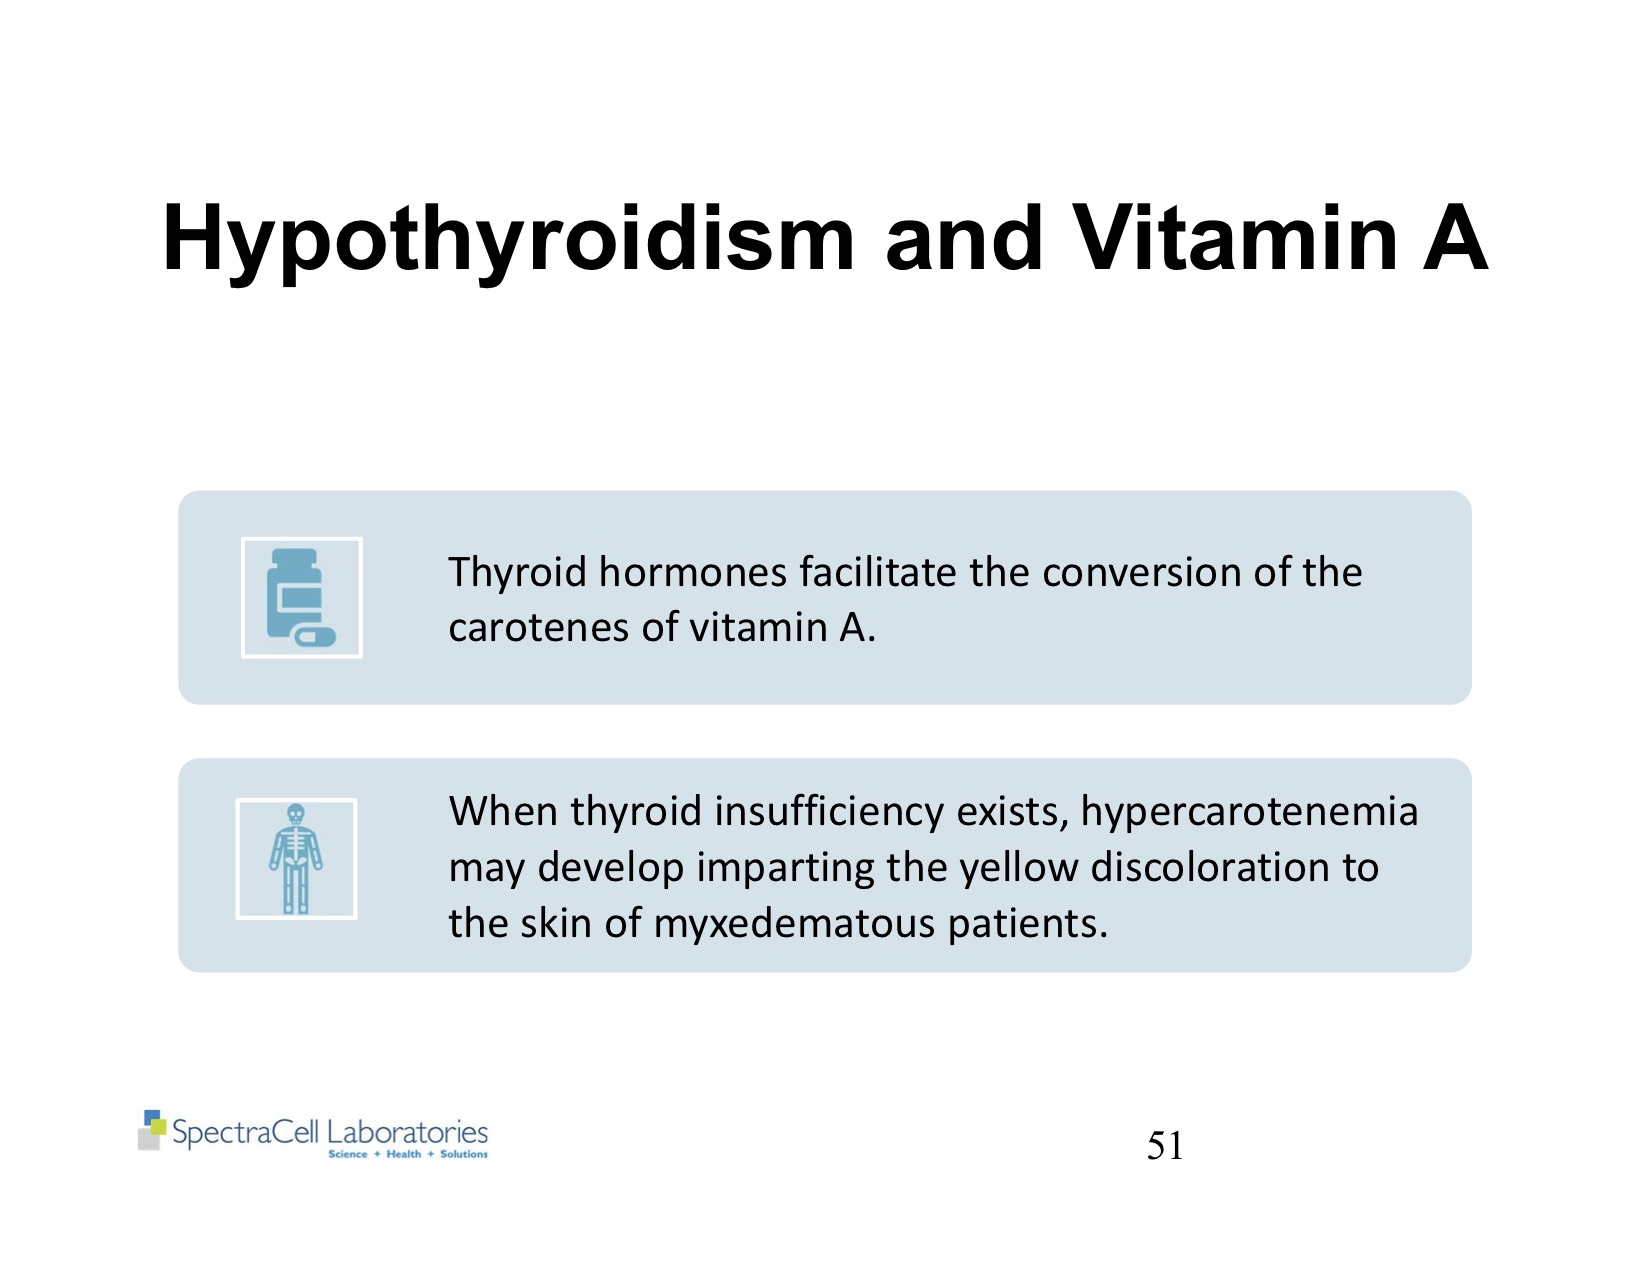 Autism and Thyroid slides 51.jpg